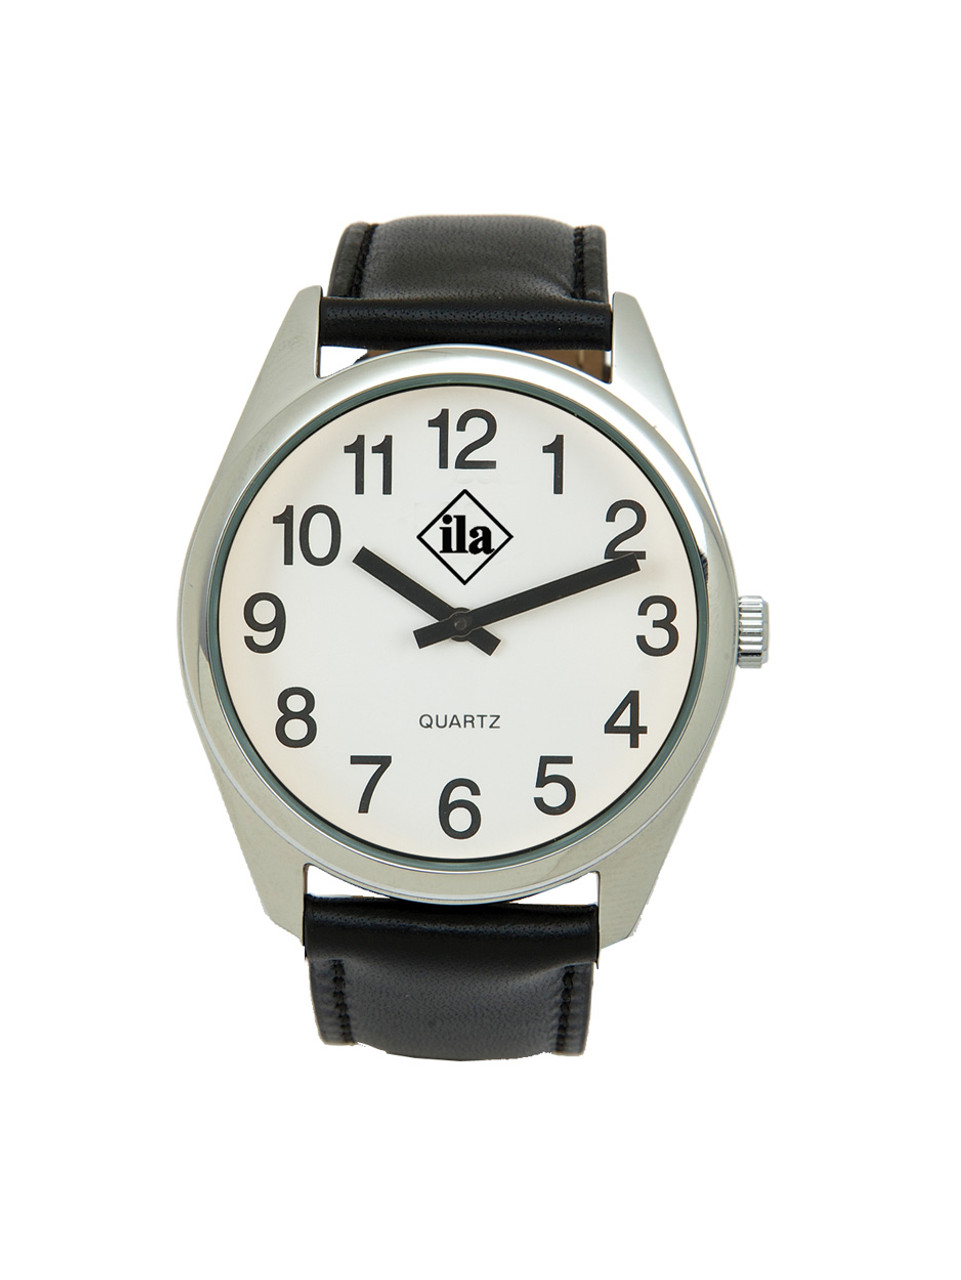 Low Vision Silver Tone Watch with White Face and Leather Band